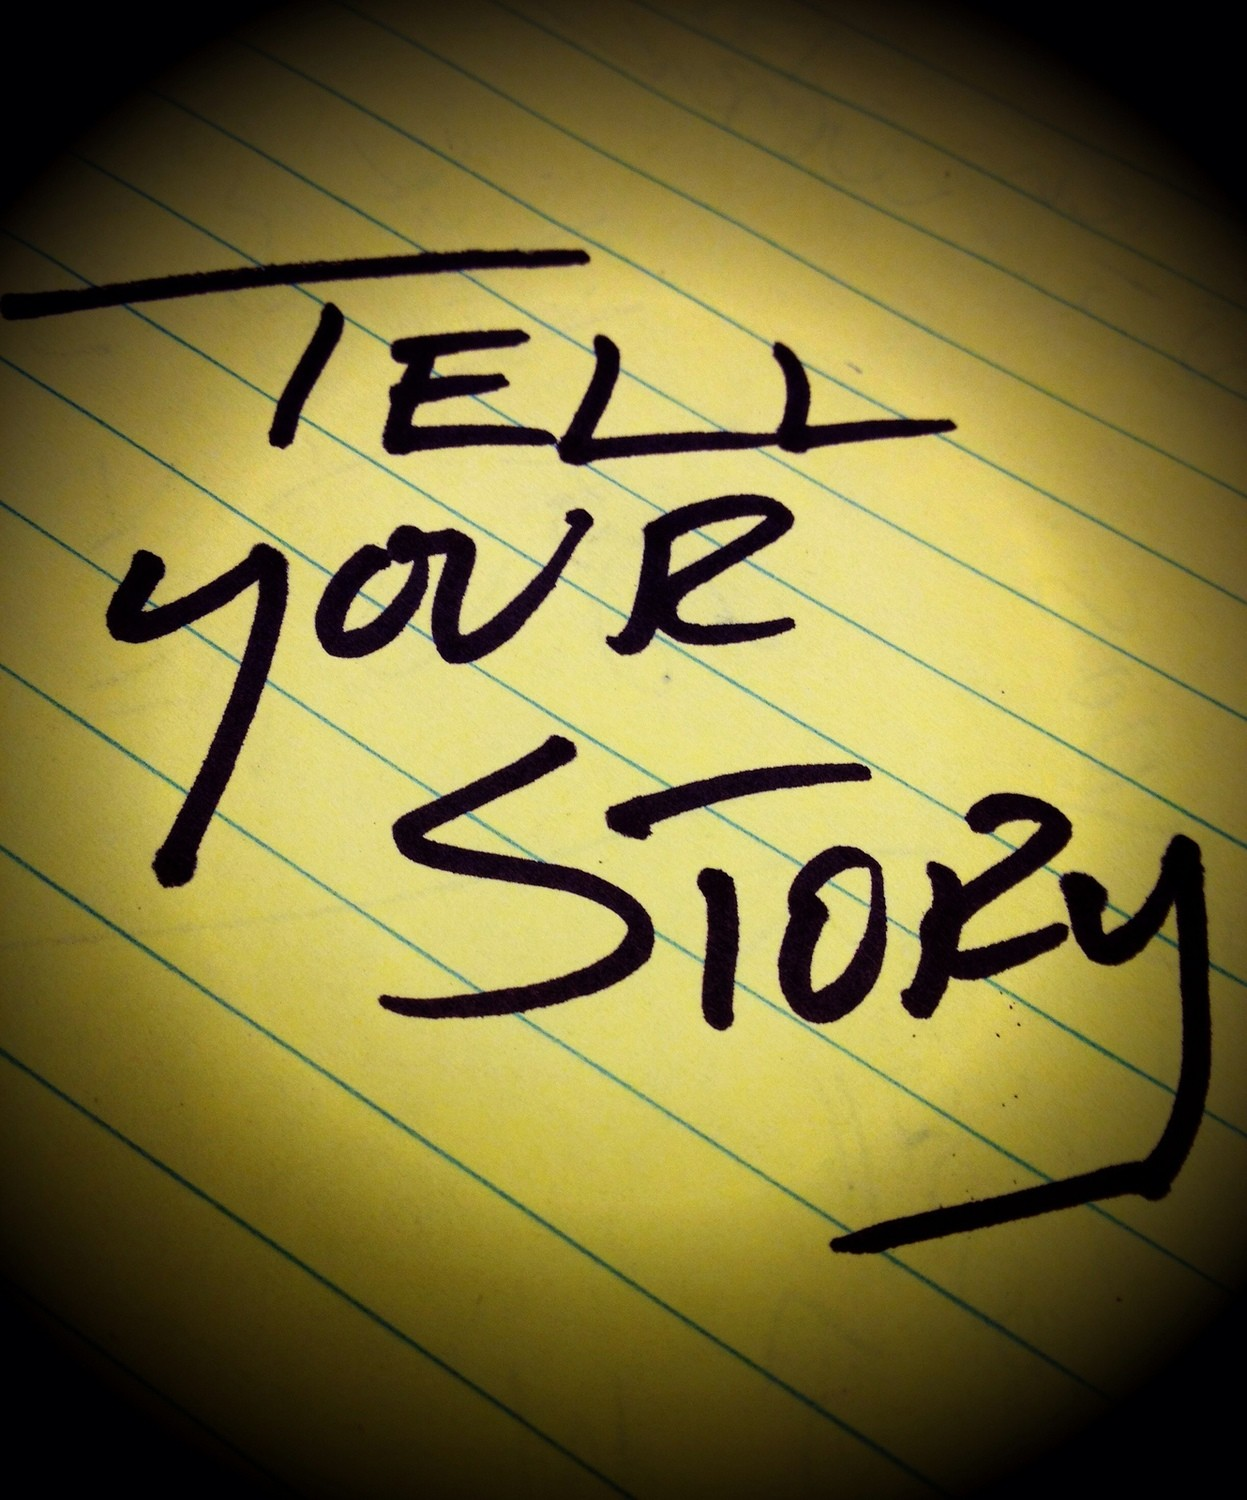 Writing Your Story, A Guide to Narrative and Memoir Writing, Weekend Workshop Saturday August 24th 9am-4pm and Sunday August 25th 9am-12pm